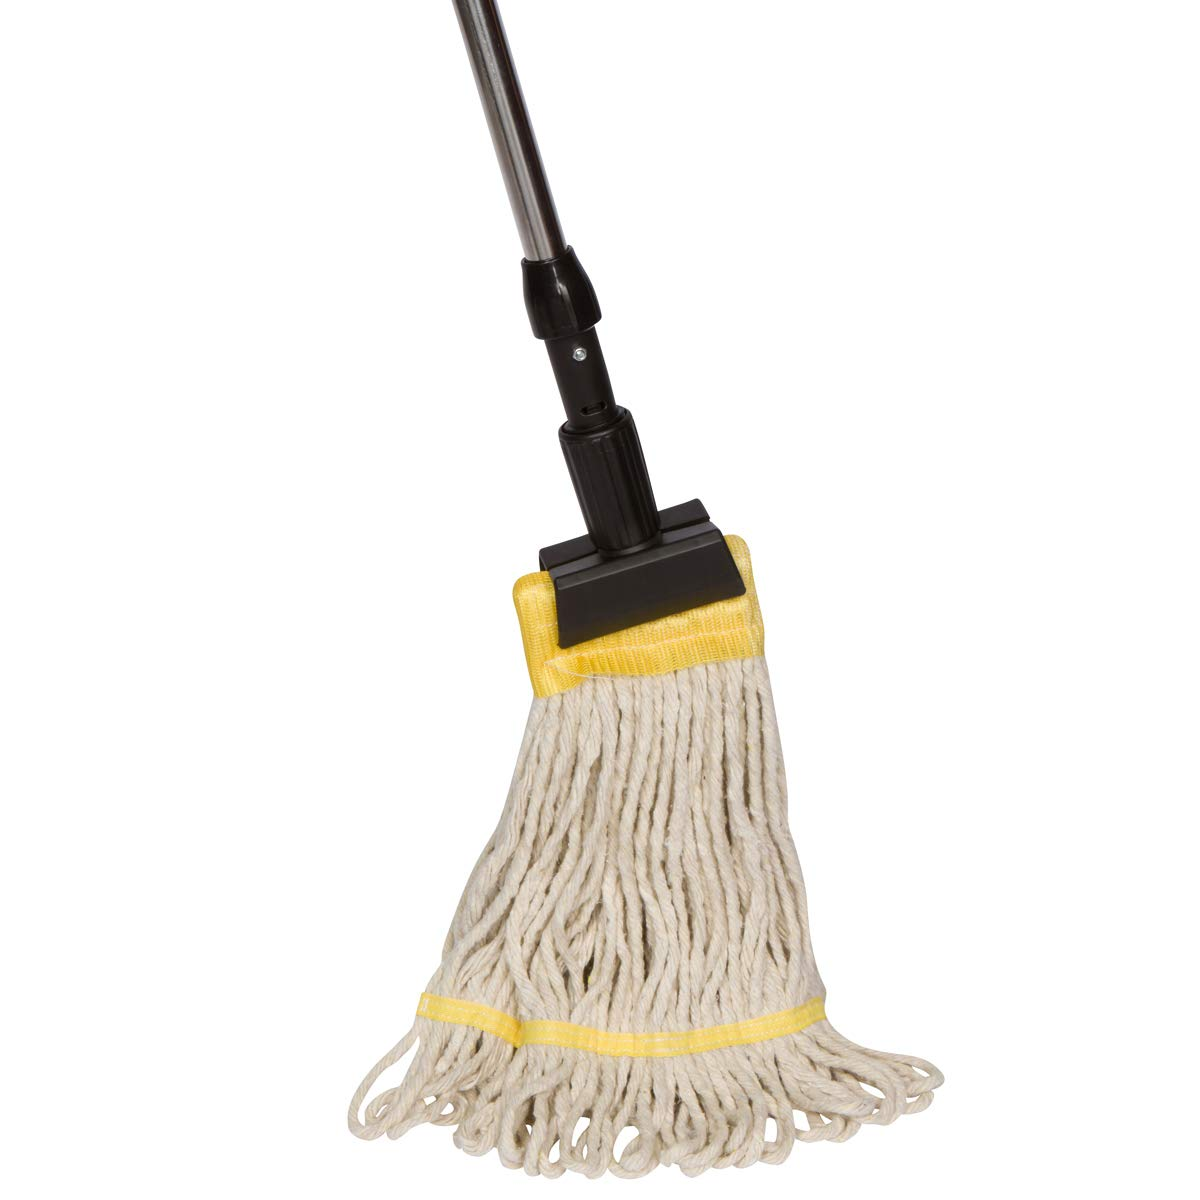 Tidy Tools Industrial Grade String Mop With Aluminum Handle and Jaw Clamp - 20.5 Oz Cotton Mop Head With Looped Ends